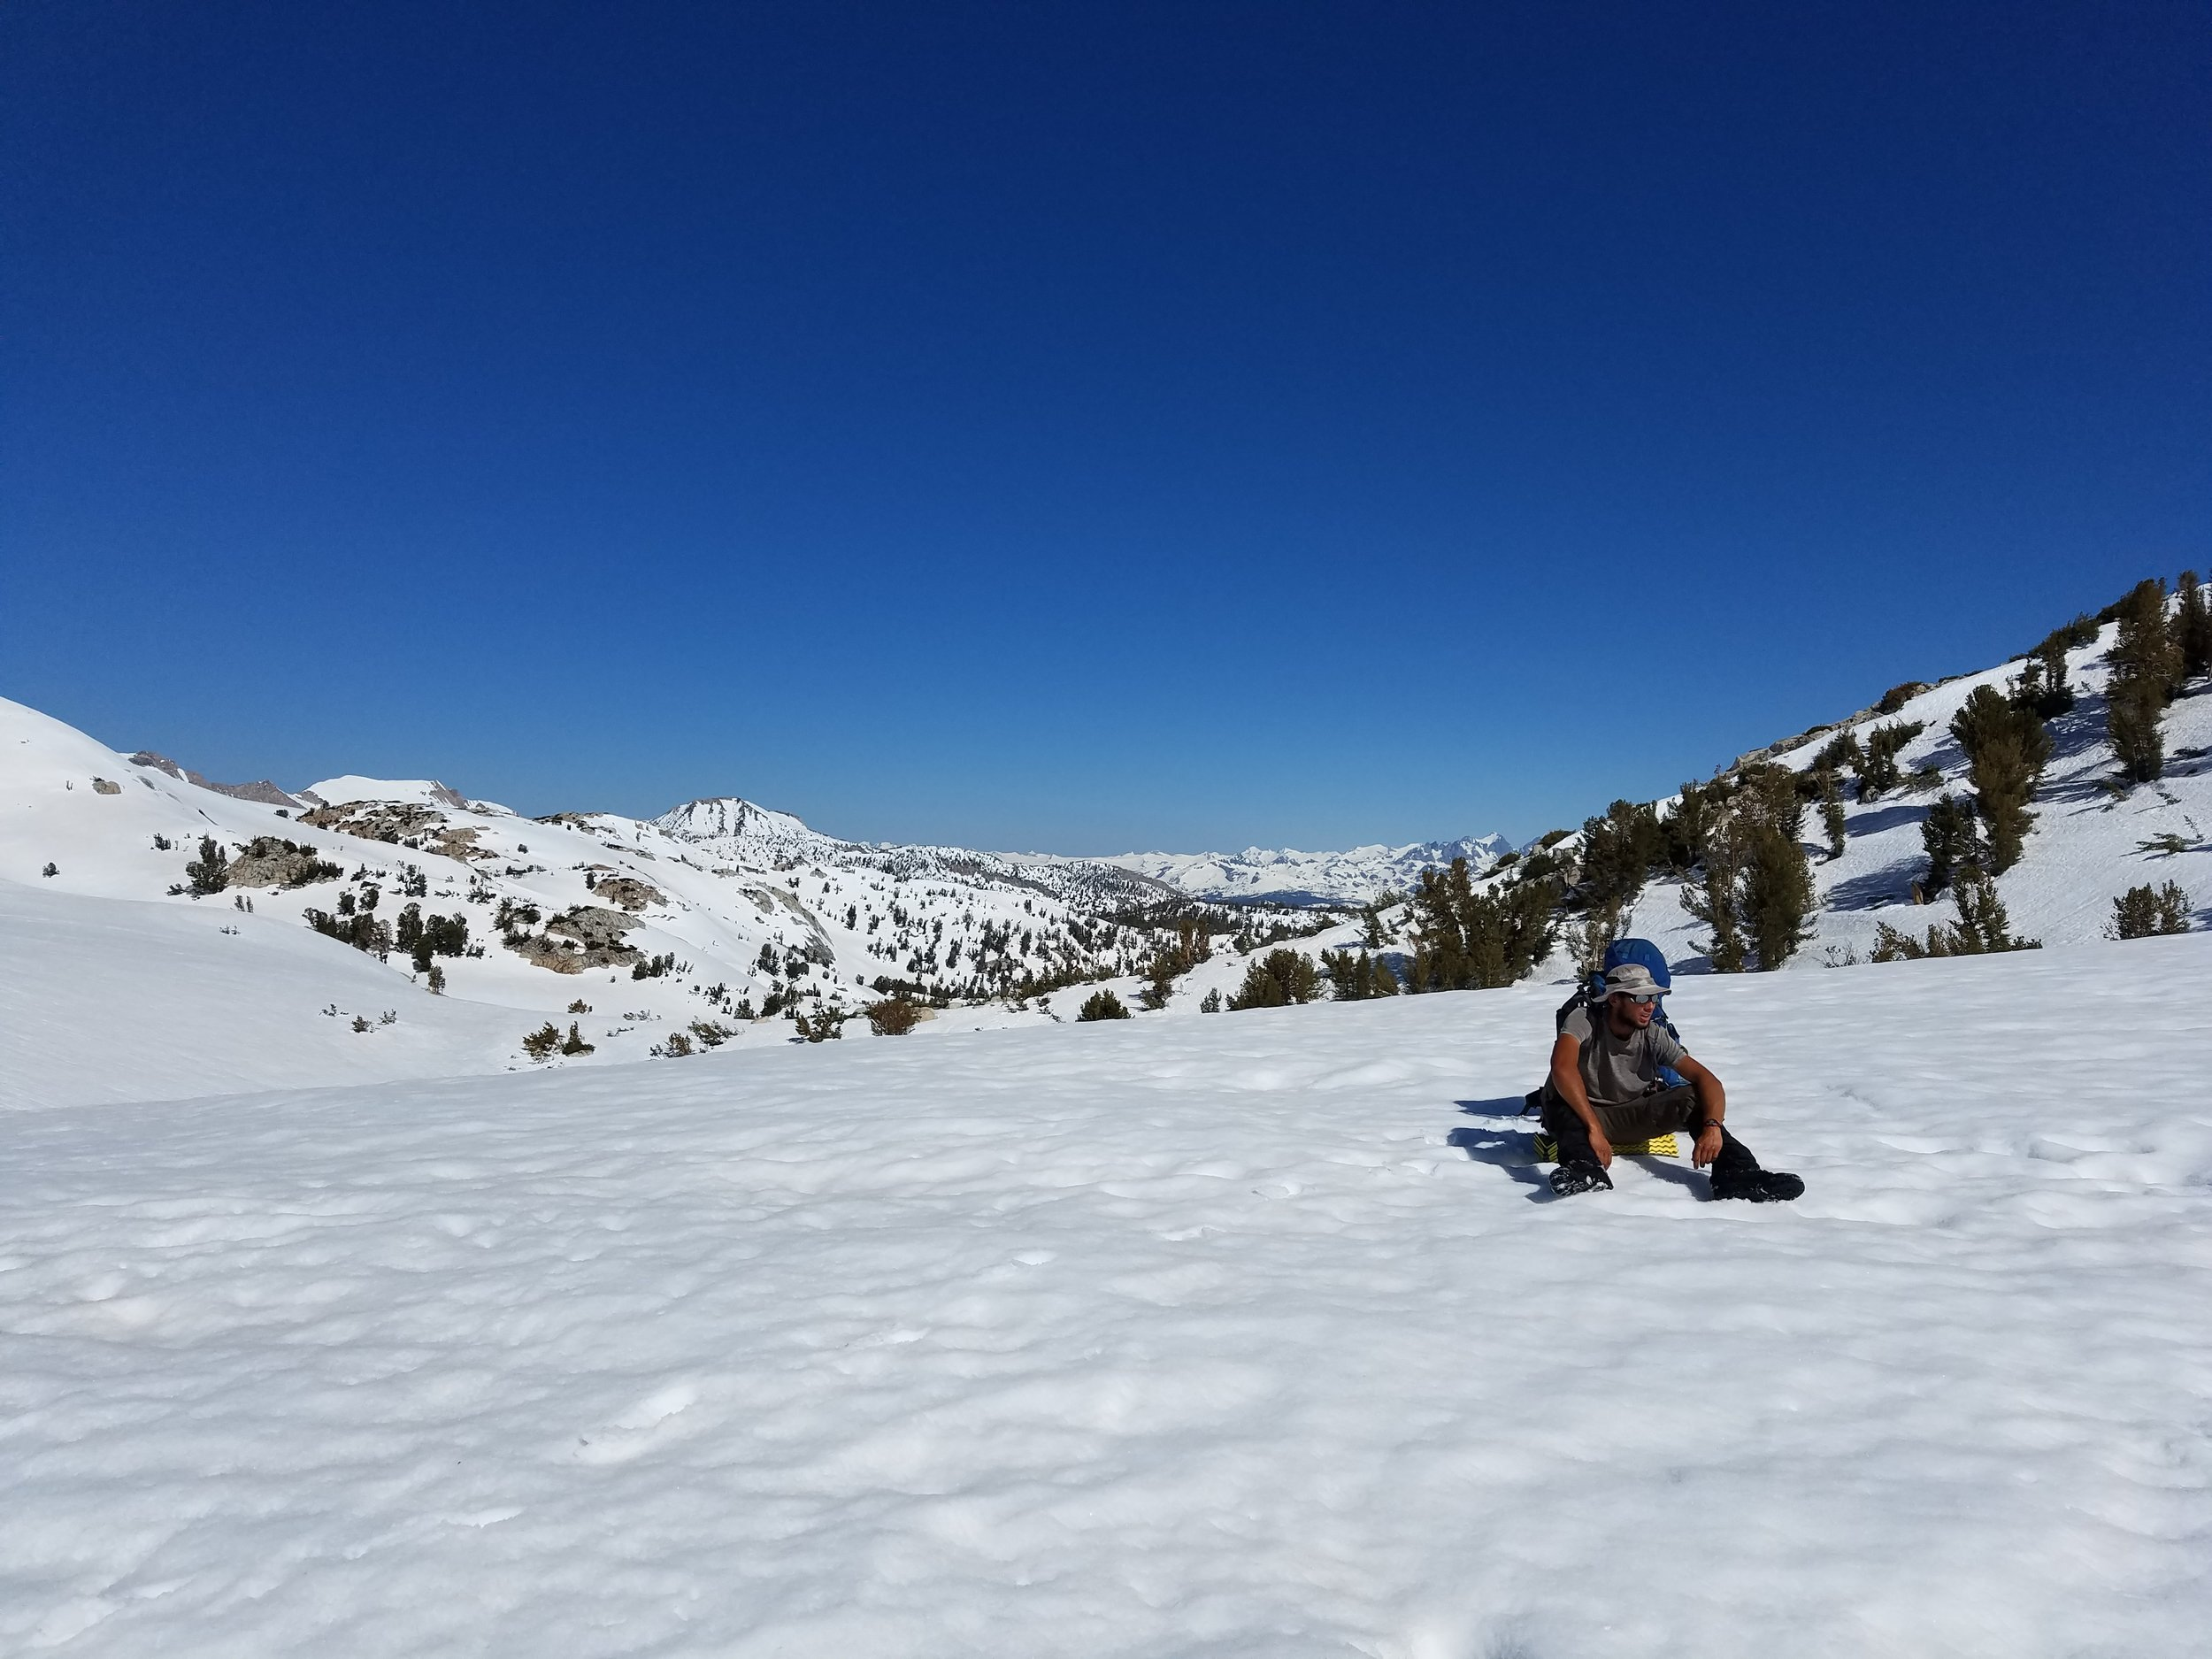 Thor, pausing for a break before heading up the final slope to Silver Pass.